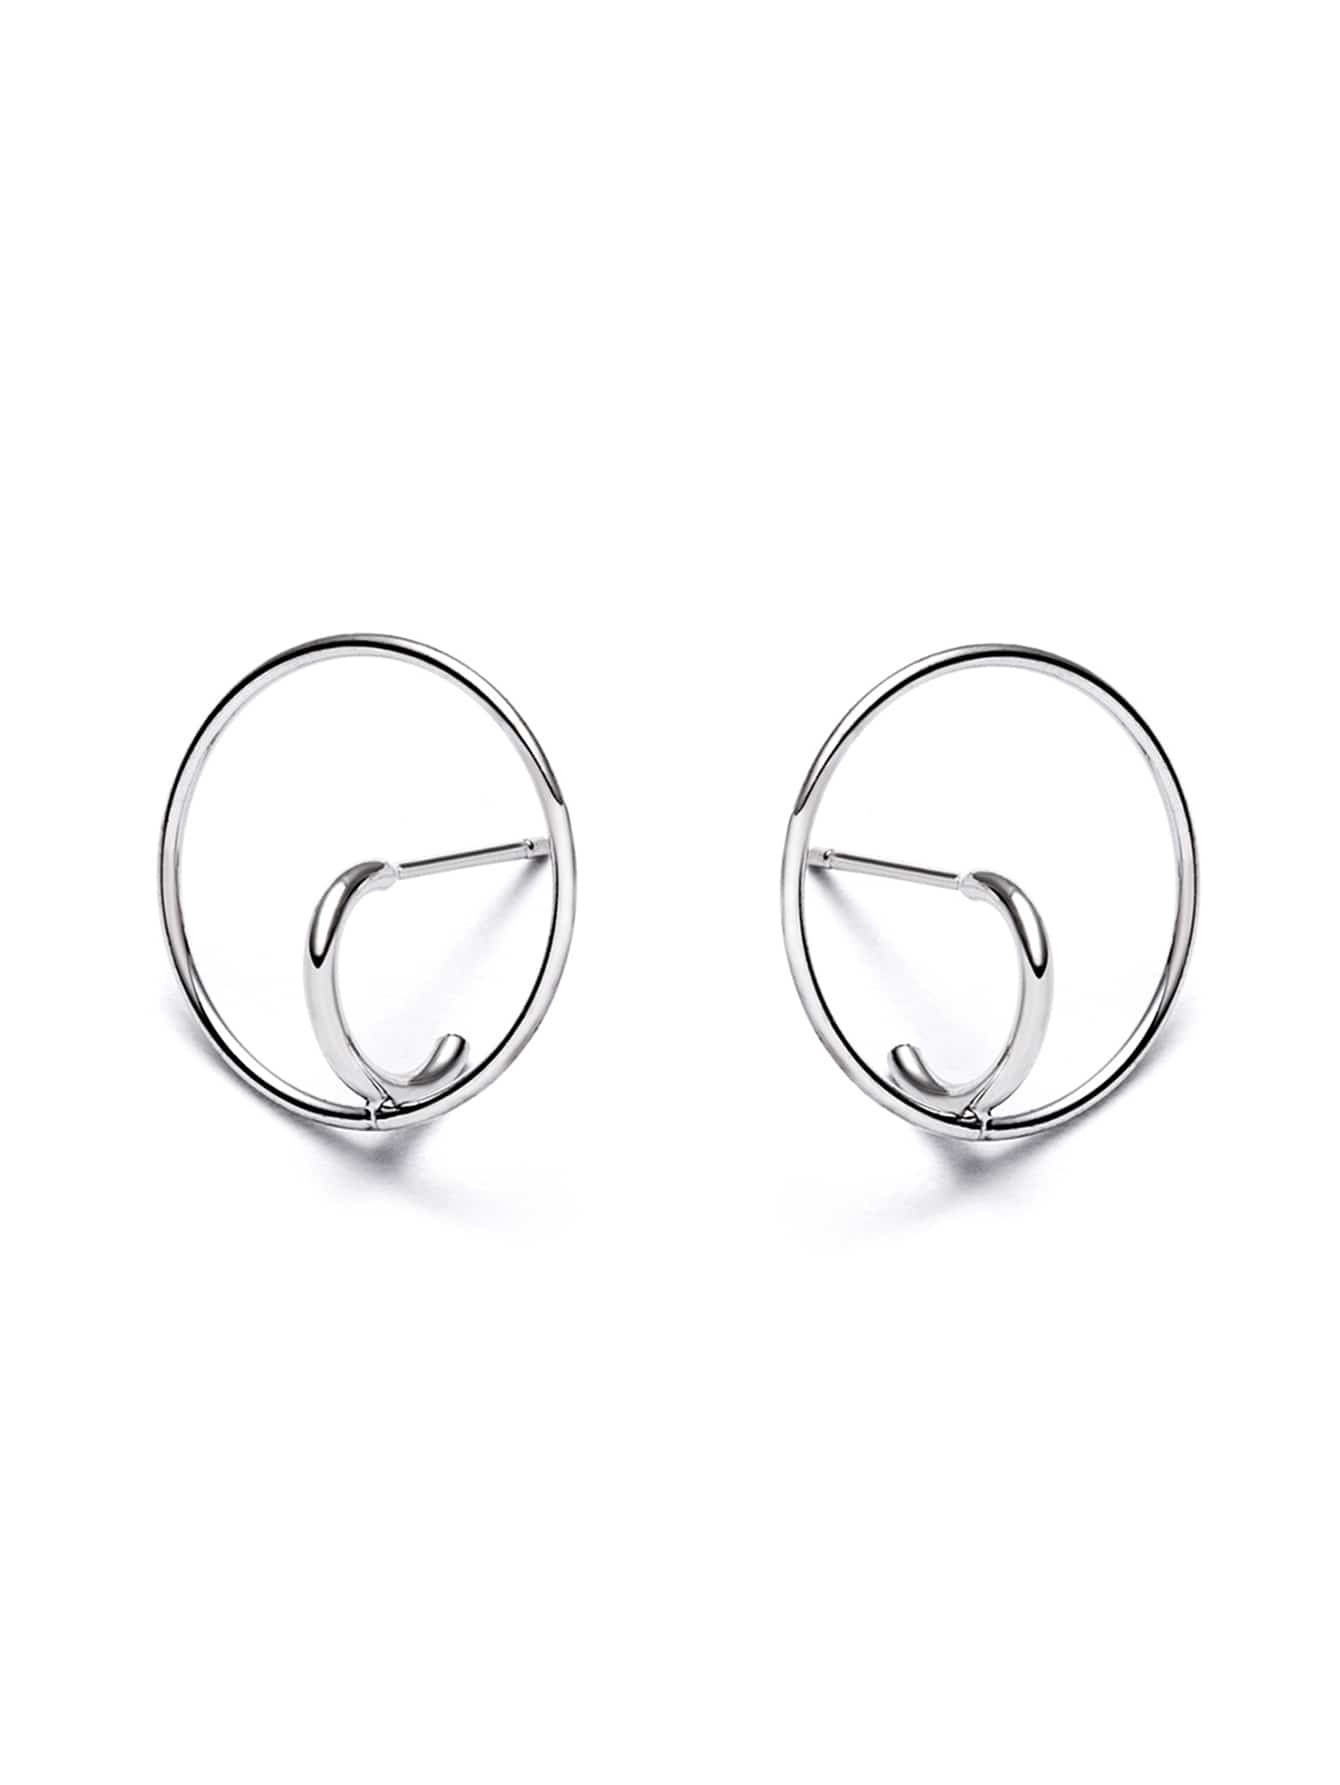 Silver Plated Geo Circle Trumpet Design Earrings